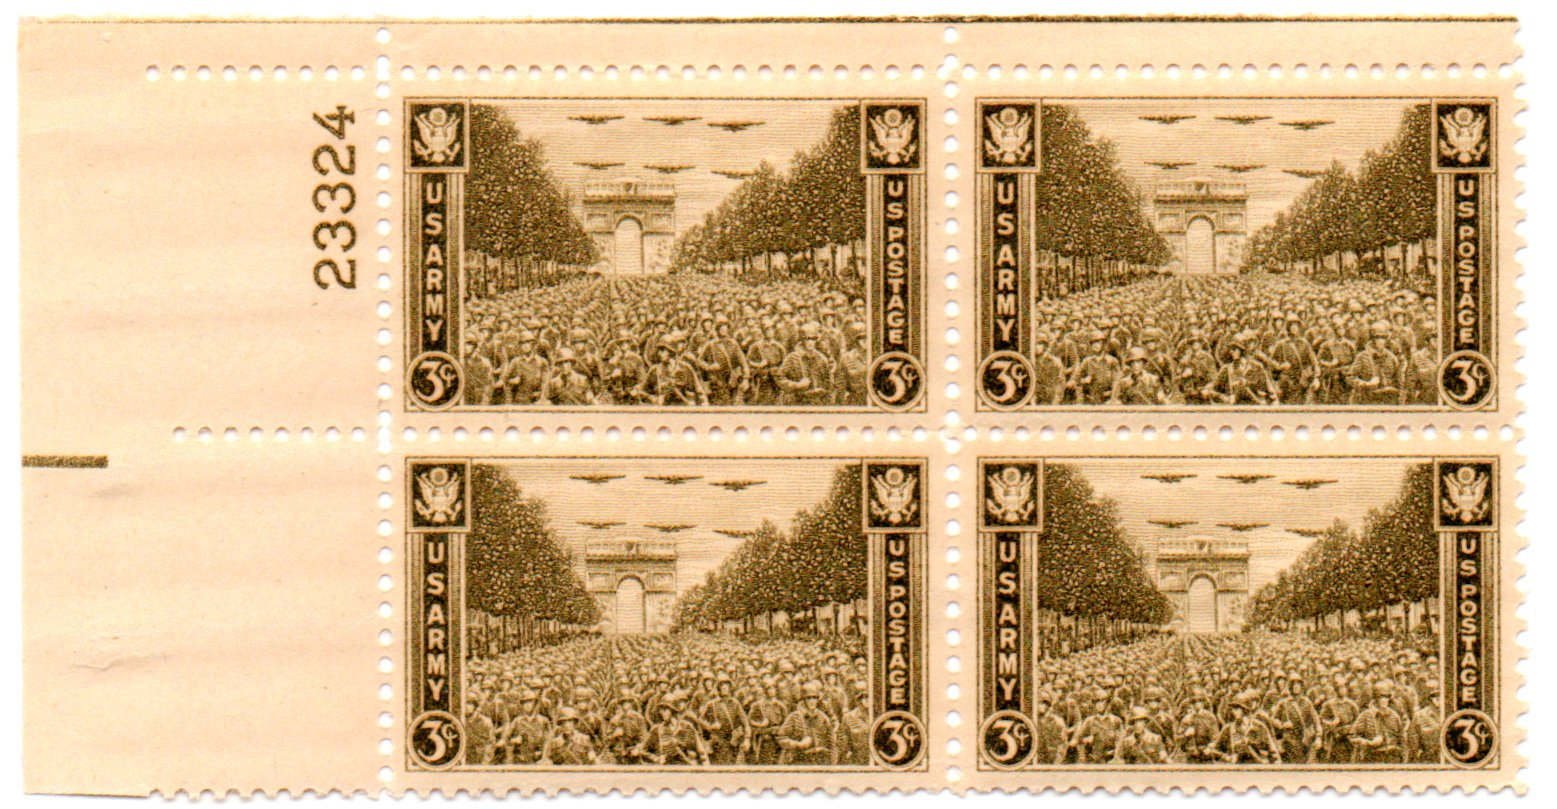 1945 U. S. Troops Passing Arch of Triumph, Paris, Army Issue Plate Number Block of Four 3 Cent Postage Stamps Scott 934 By USPS